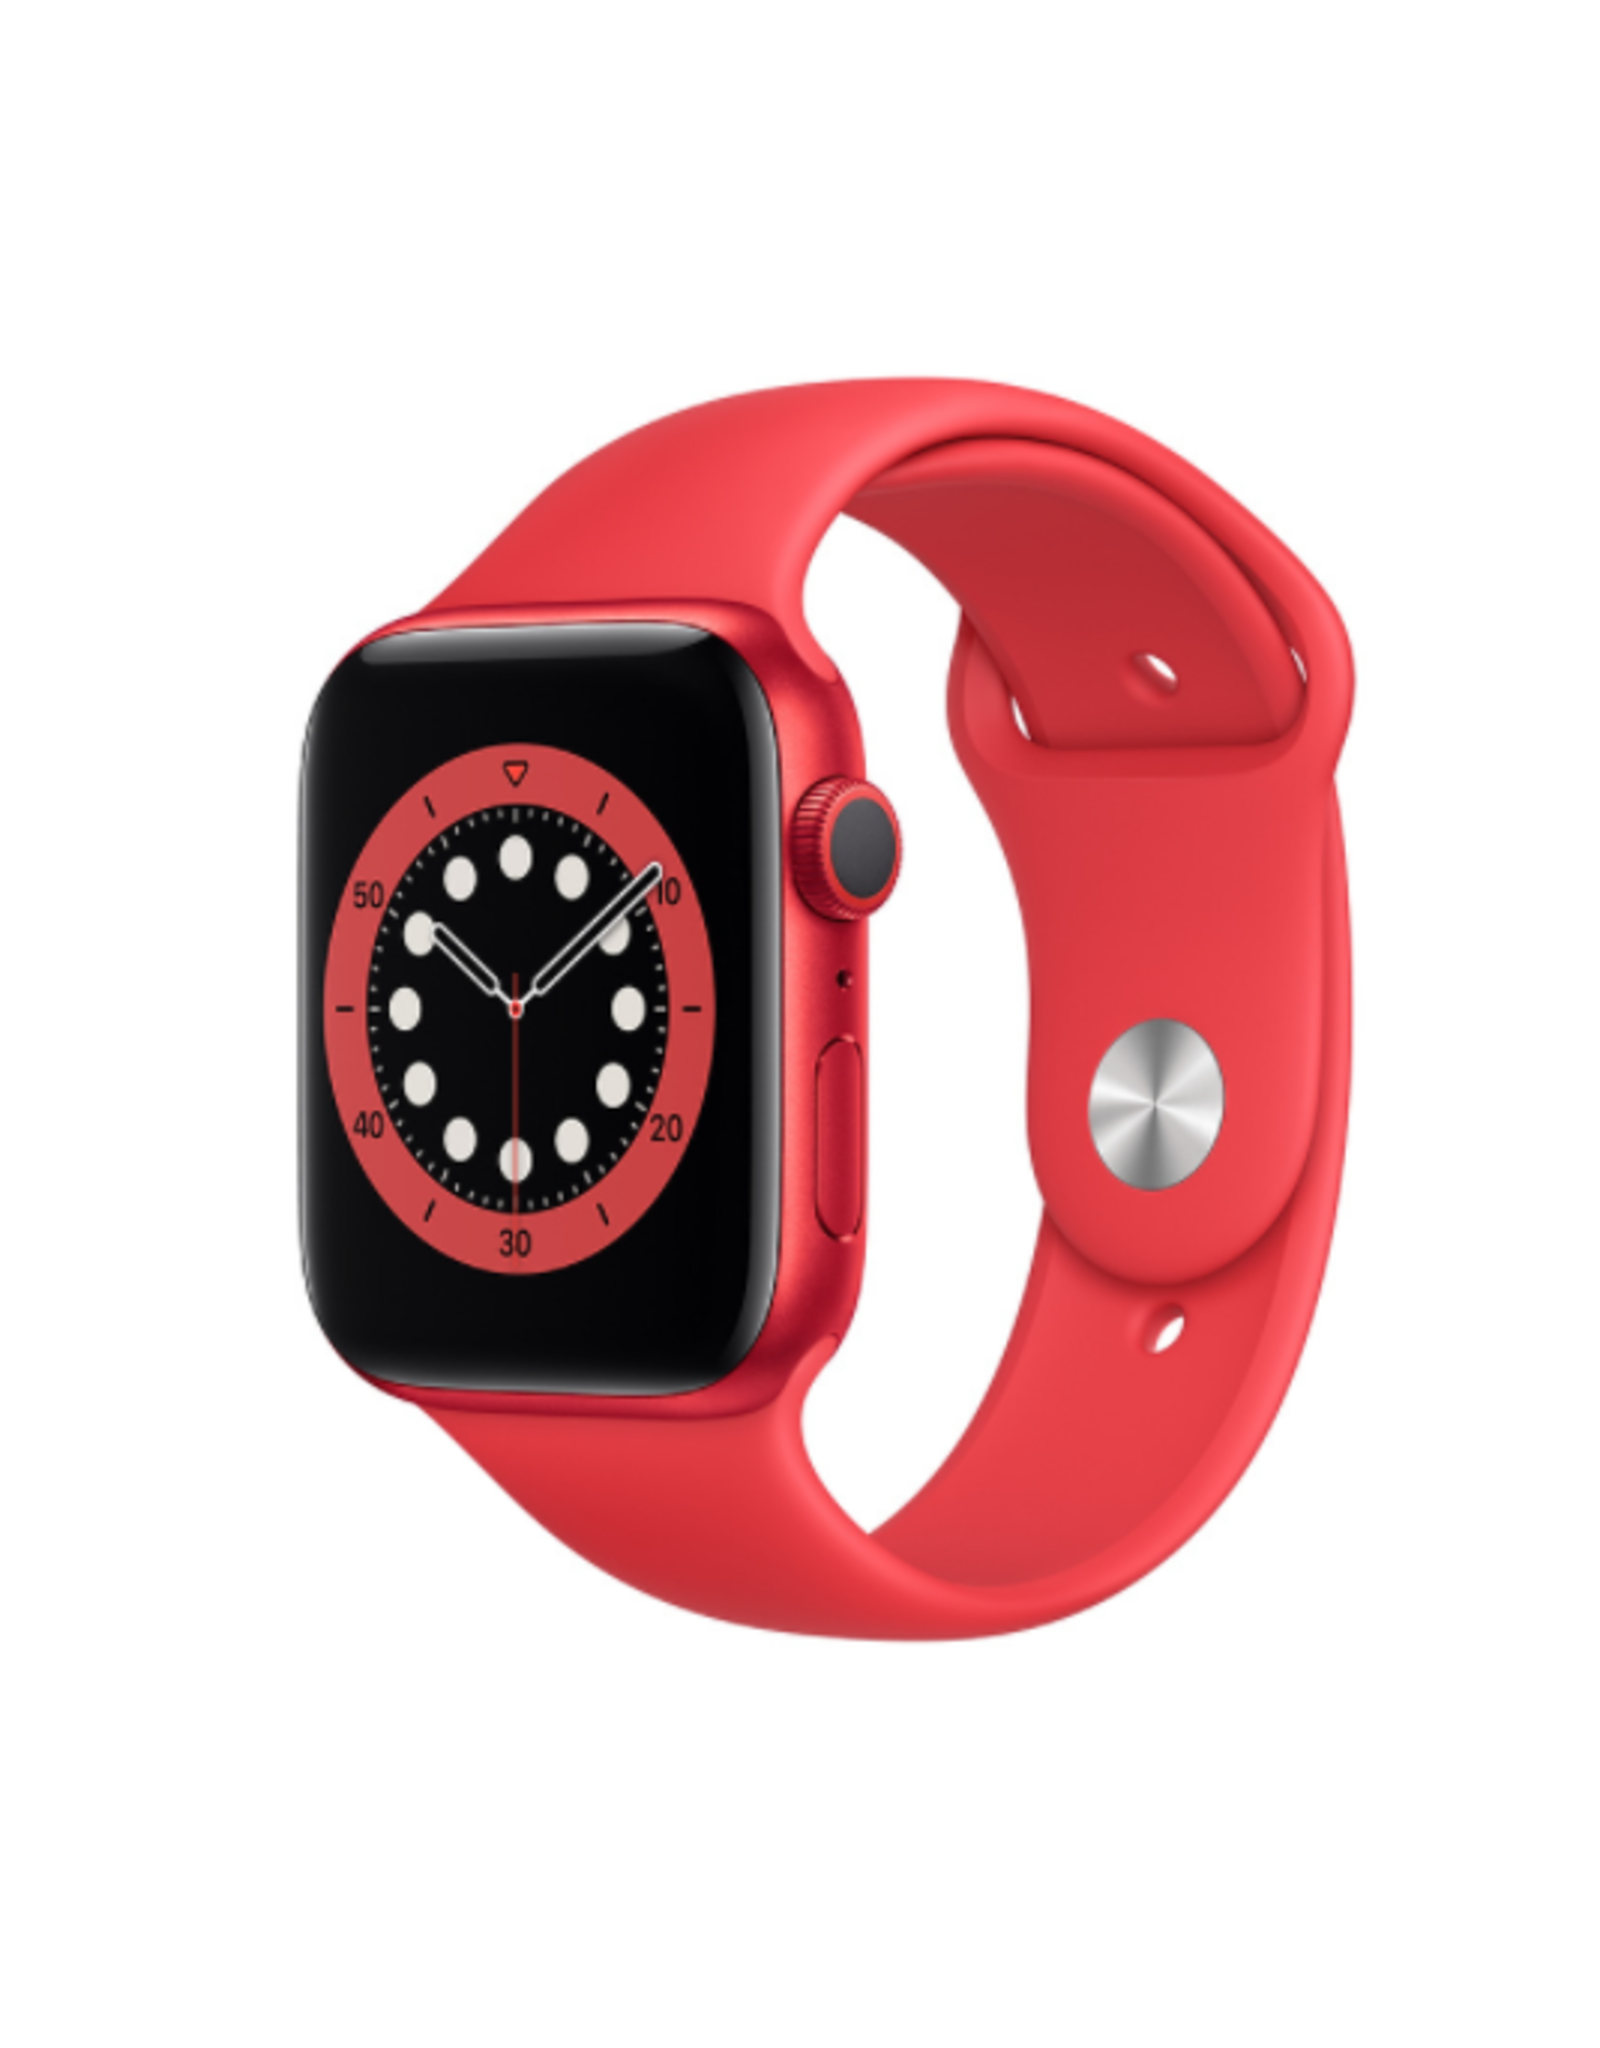 APPLE APPLE WATCH SERIES 6 GPS, 44MM PRODUCT(RED) ALUMINUM CASE W/ PRODUCT(RED) SPORT BAND - REGULAR